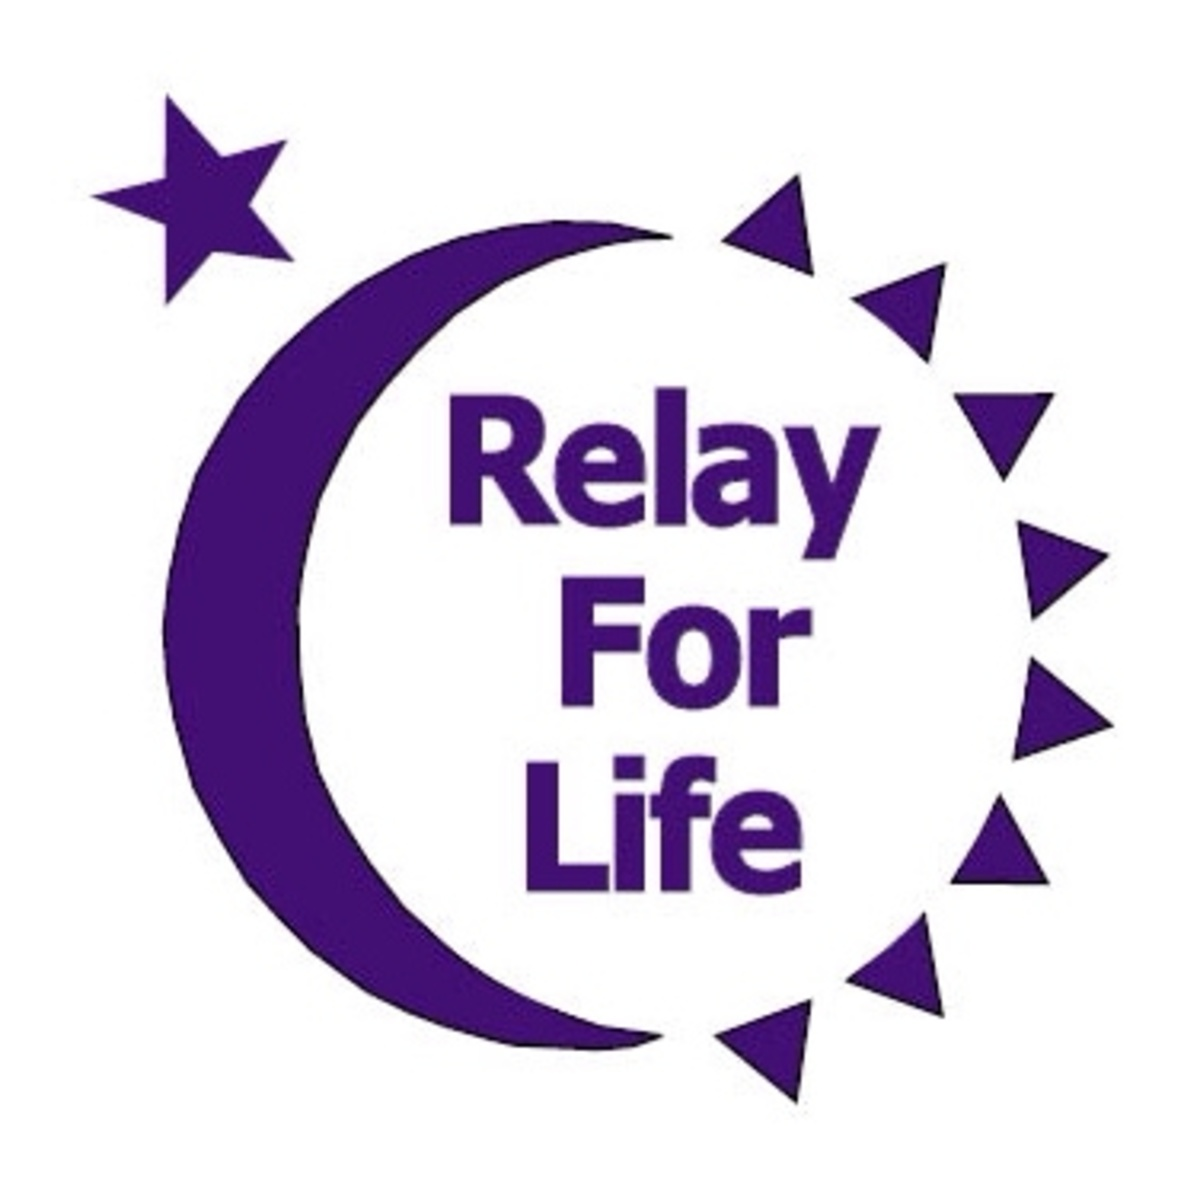 There are over 5,200 Relay For Life events in 20 countries. Every year they raise over $400 million dollars for the American Cancer Society. The money raised is used to fund cancer research. Image by Anna Zhou